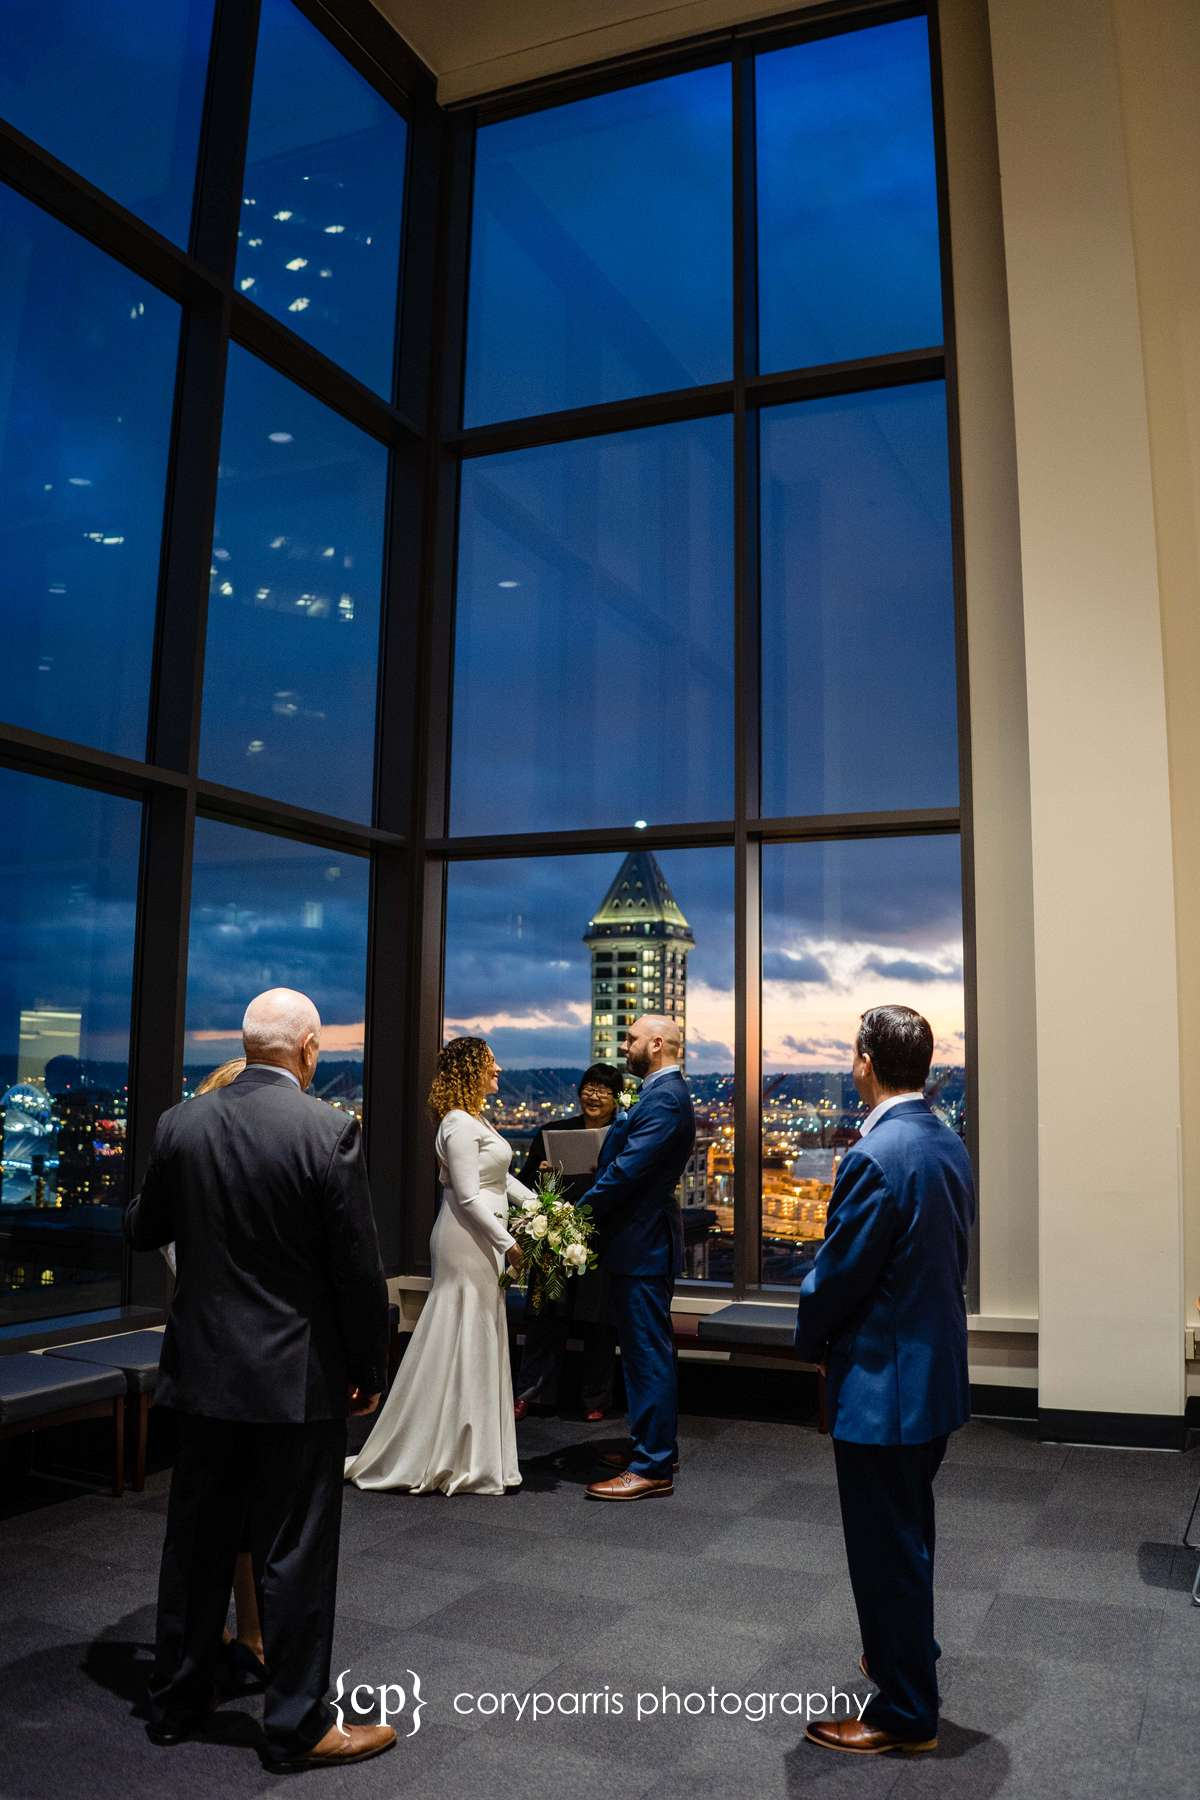 What a cool place to get married with the view of Seattle behind the couple.